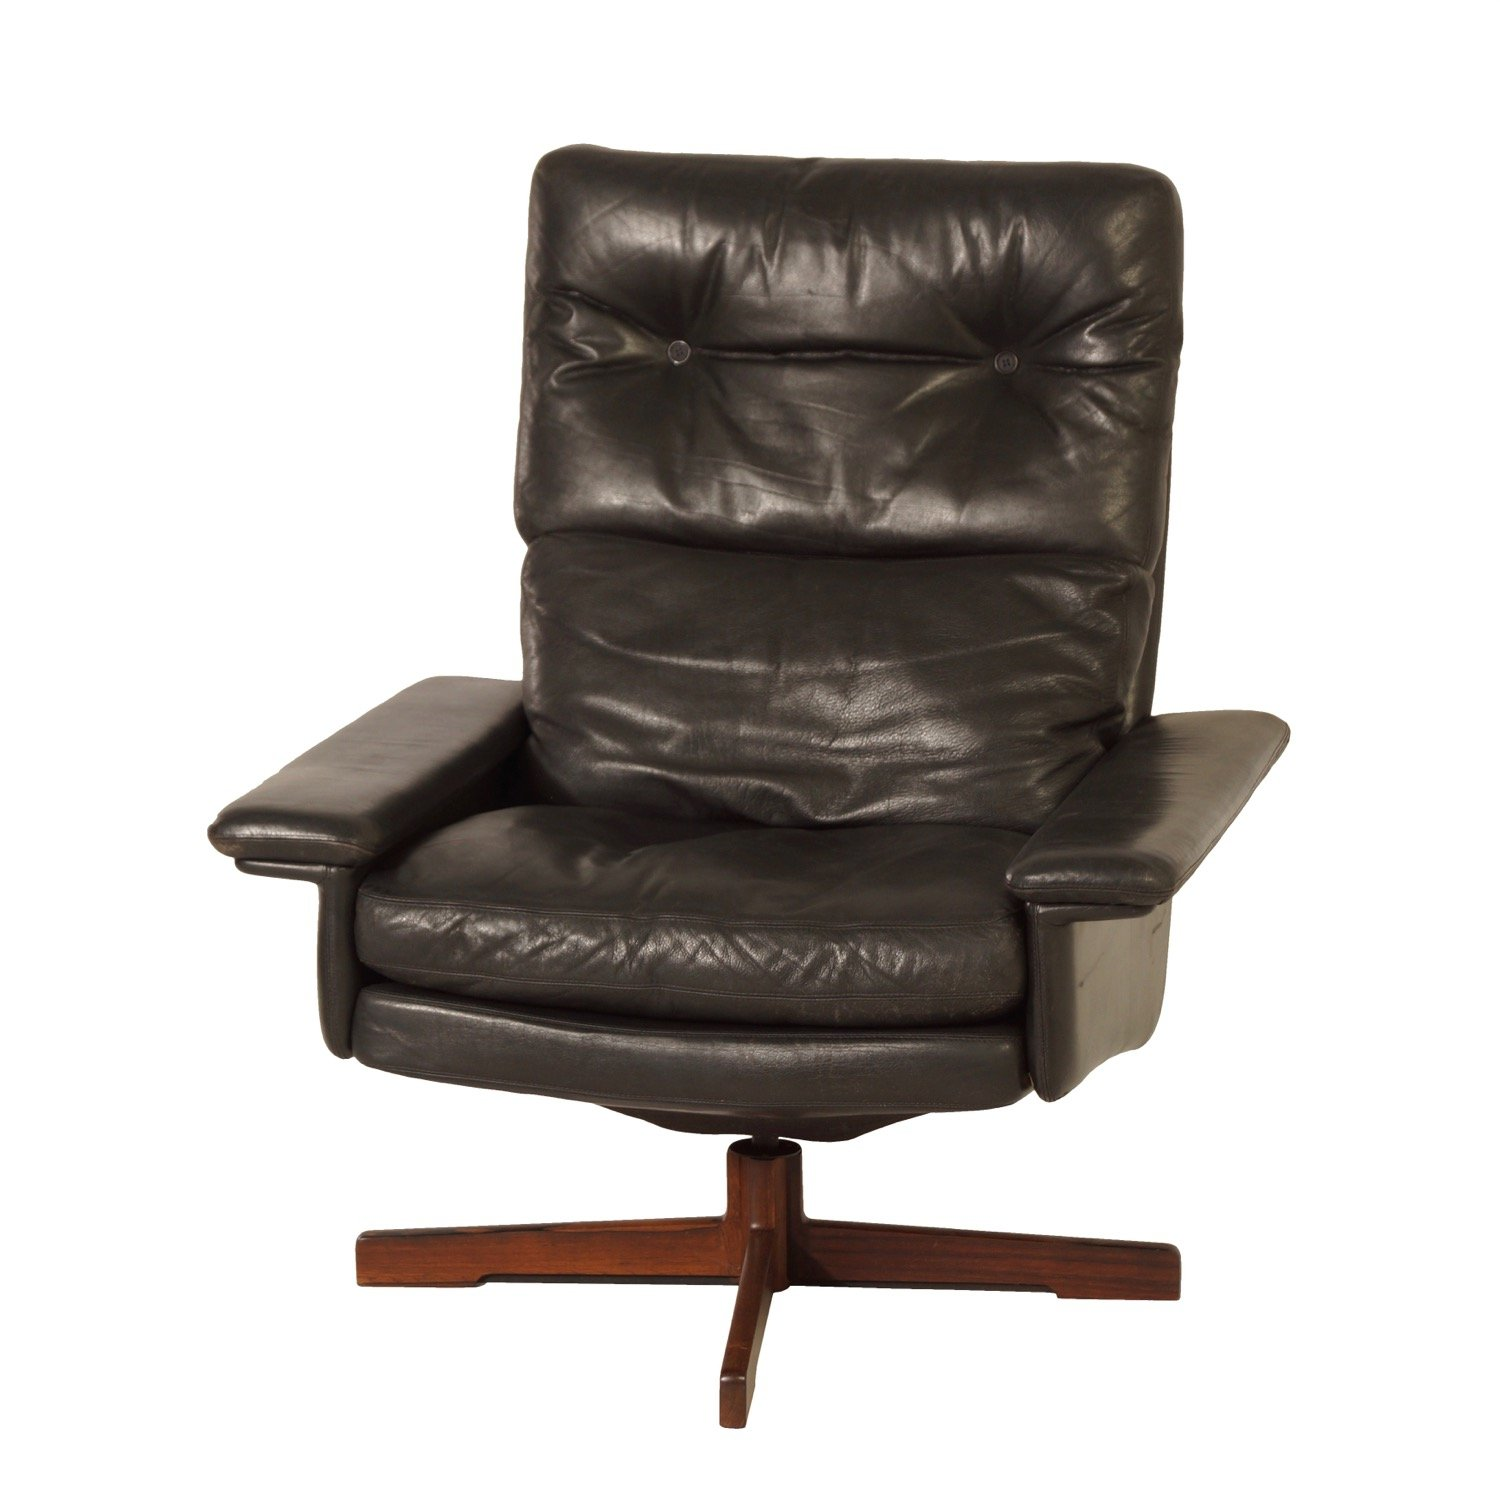 Incredible Danish Swivel Chair In Black Leather 1970S Creativecarmelina Interior Chair Design Creativecarmelinacom